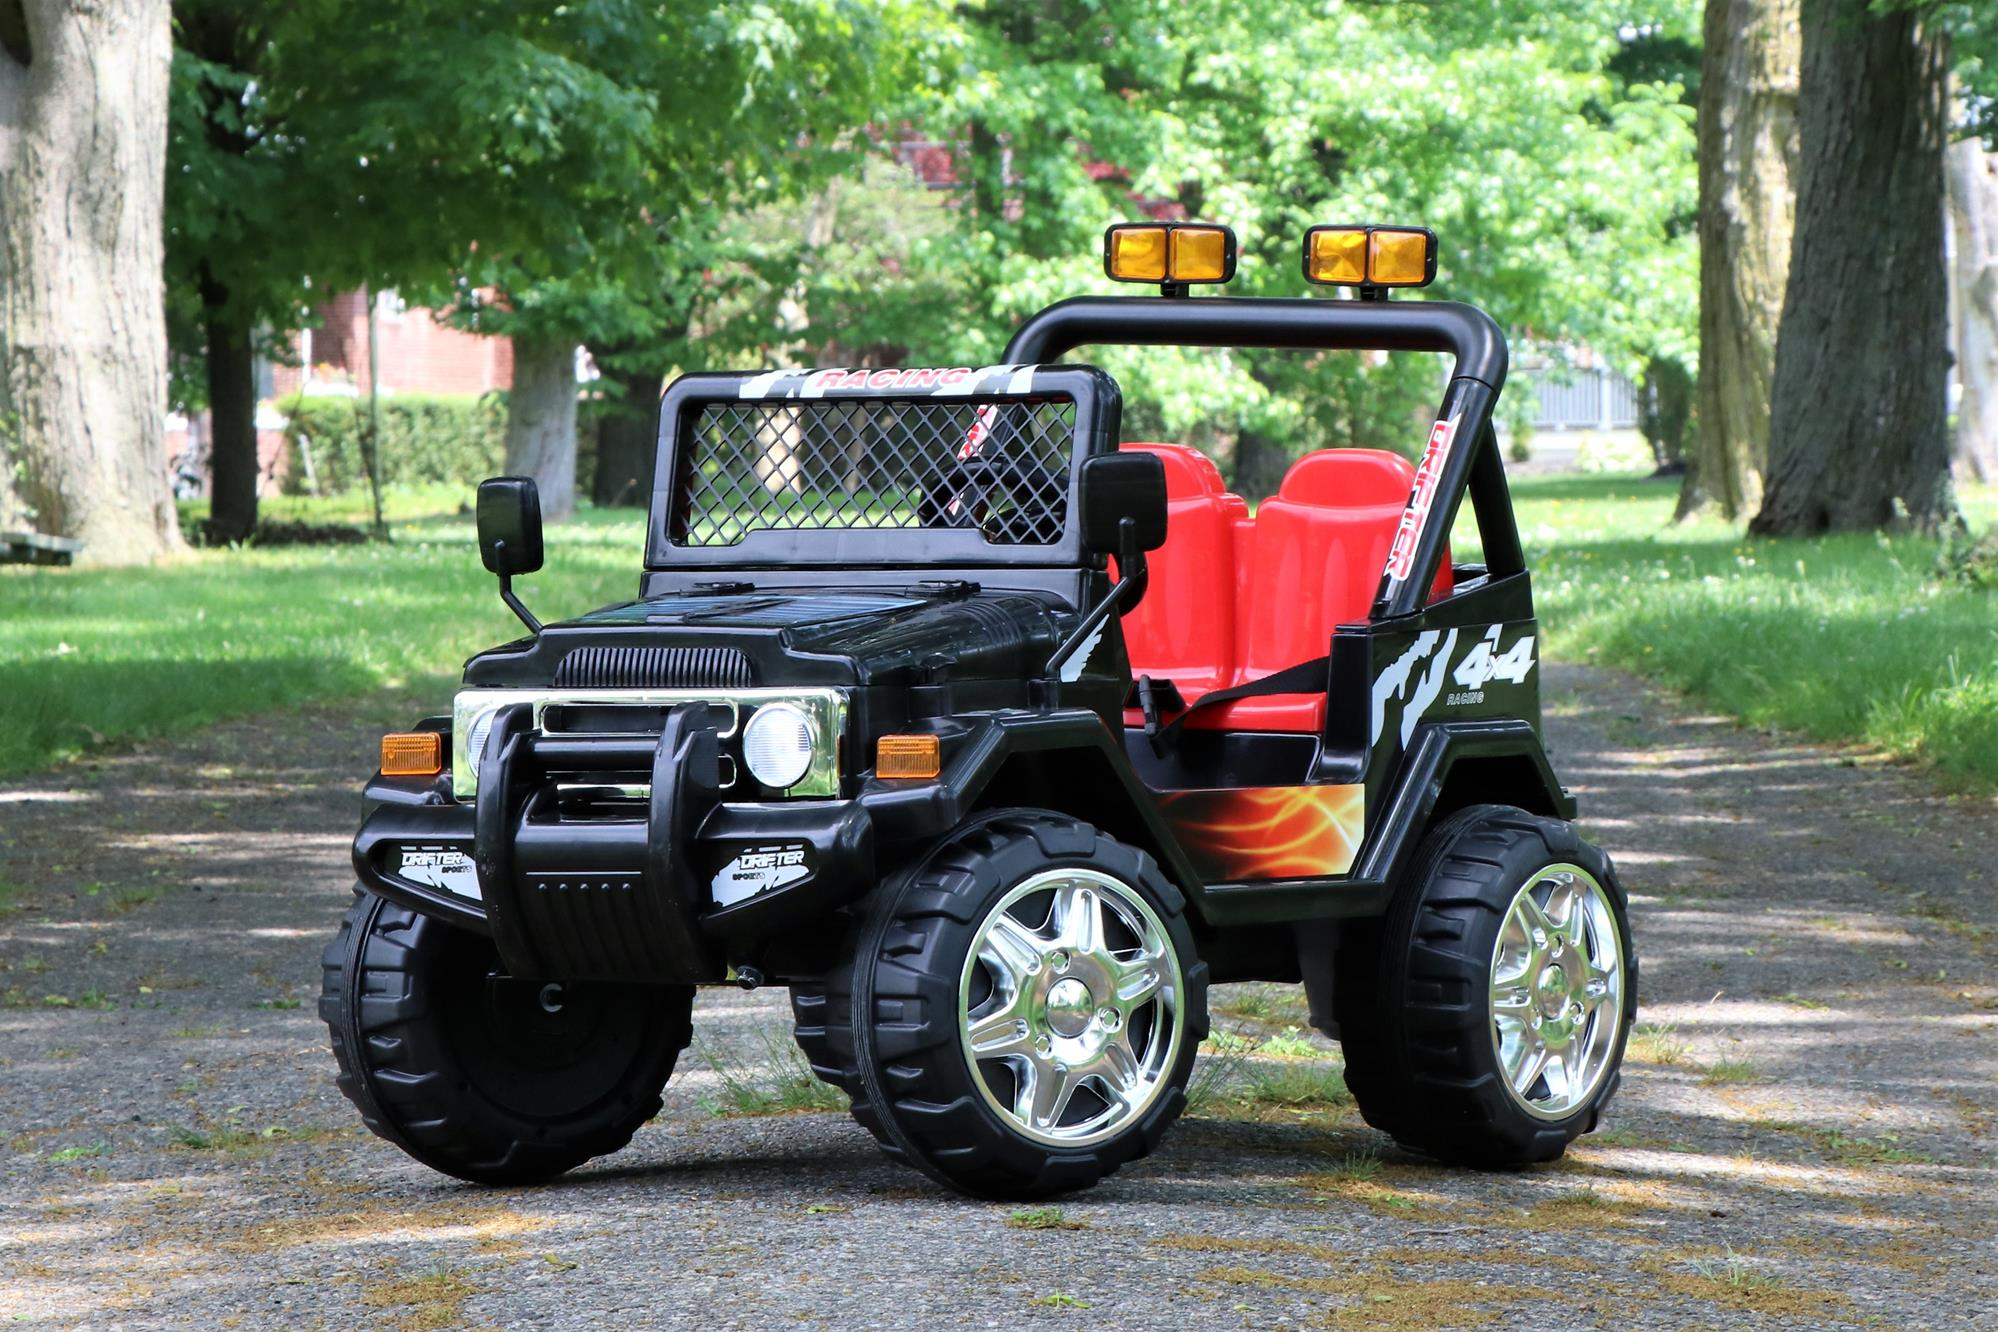 First Drive Jeep Truck 12v Dual Motor Ride On Car With Remote Control Black Ebay